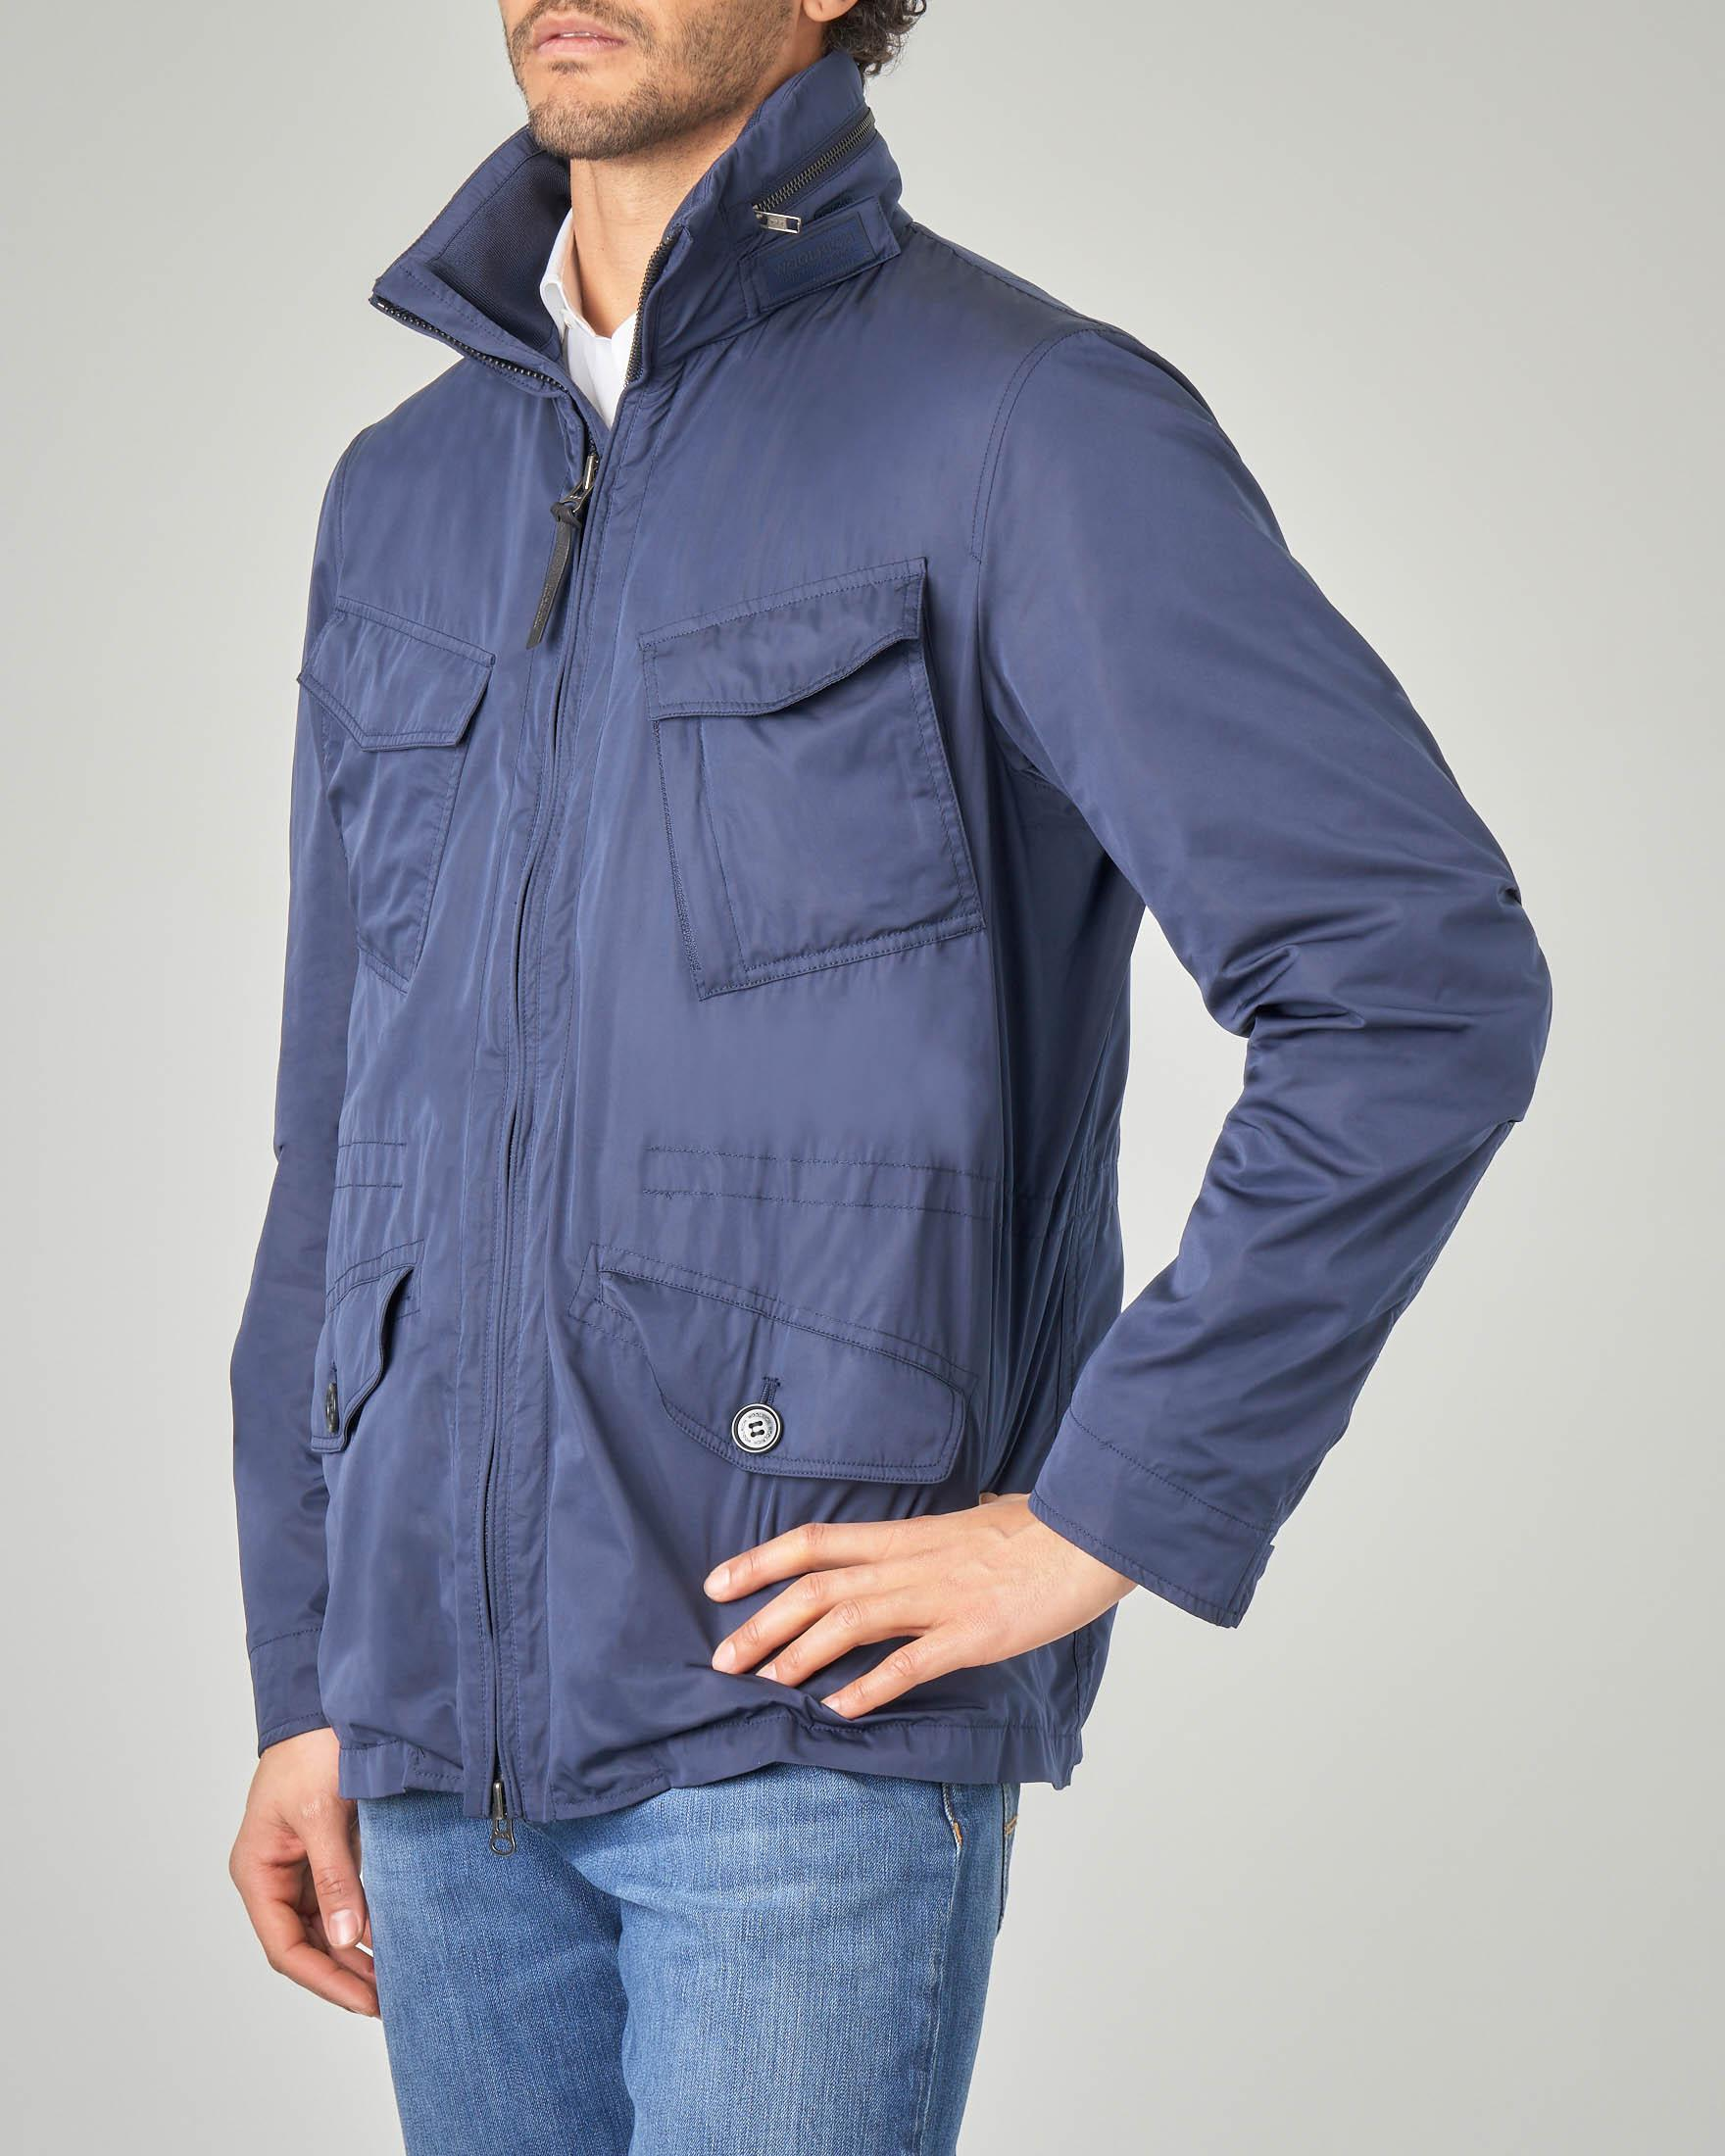 Field jacket blu in nylon